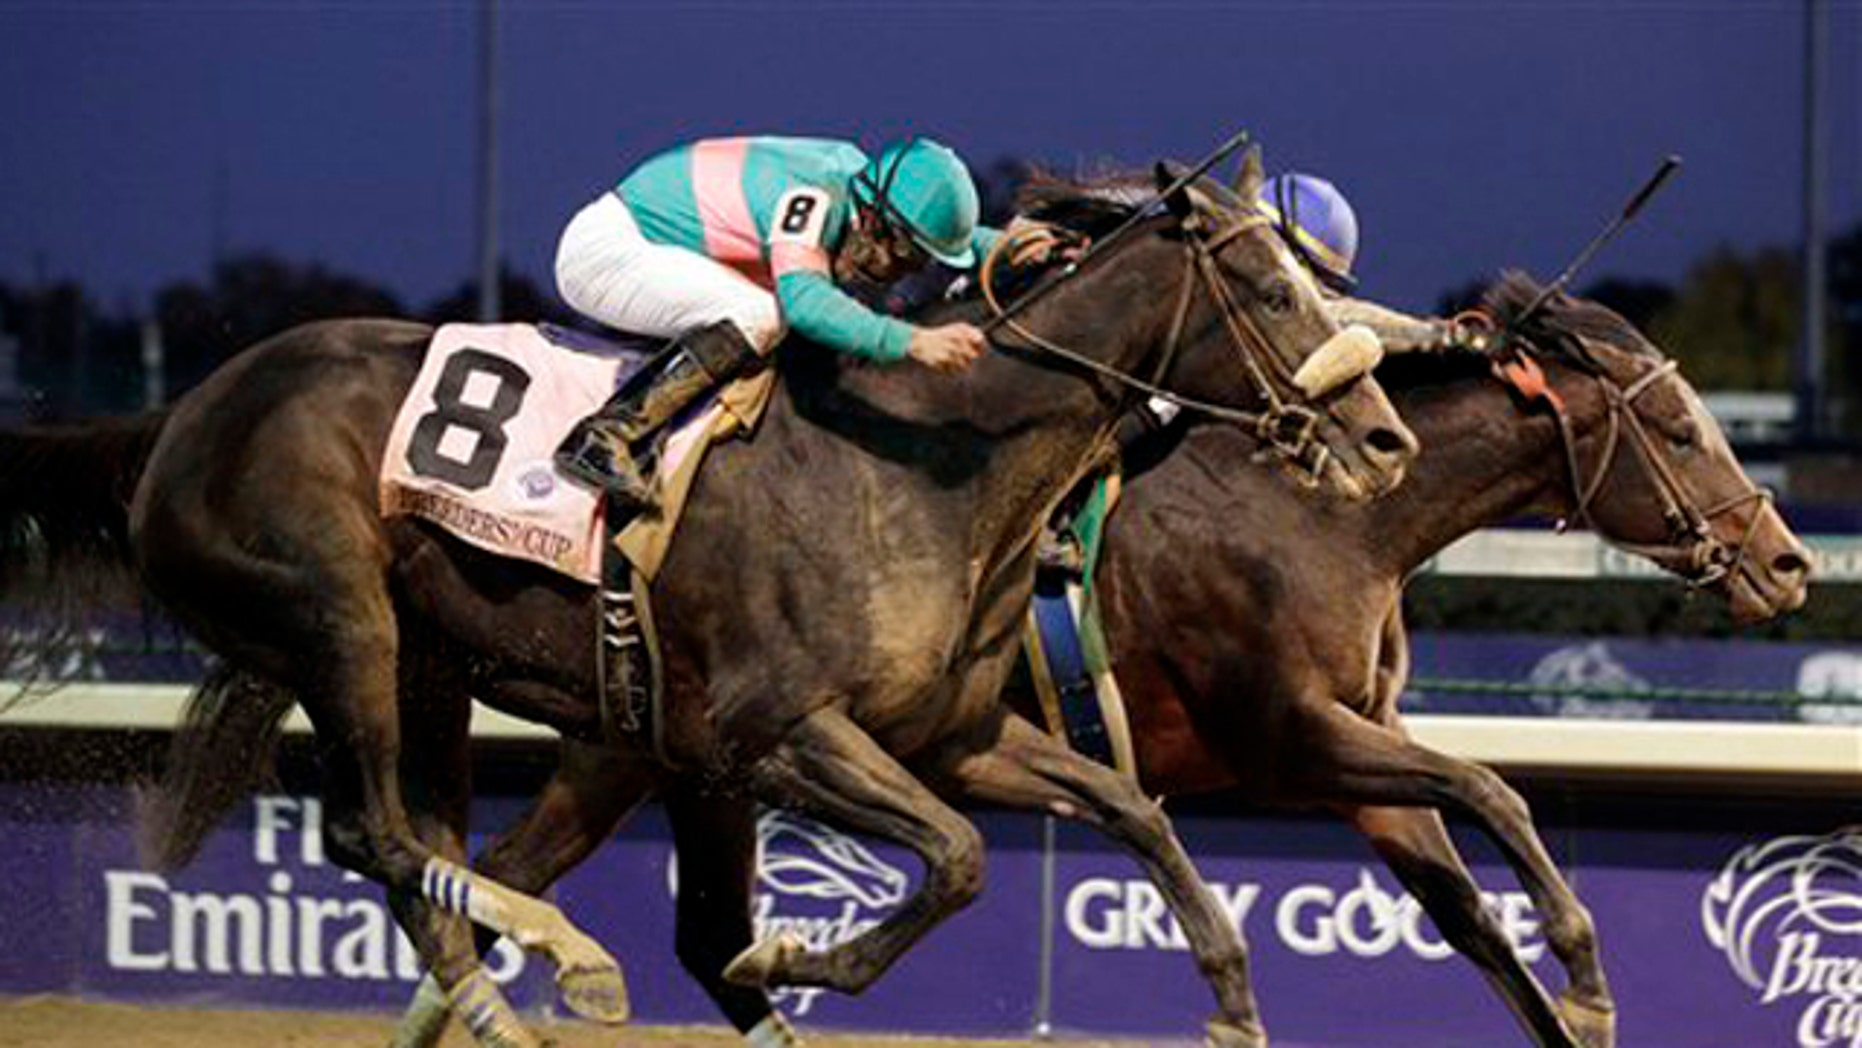 Nov. 6, 2010: Garrett Gomez riding Blame beats Mike Smith riding Zenyatta during the Classic race at the Breeders' Cup at Churchill Downs in Louisville, Ky.